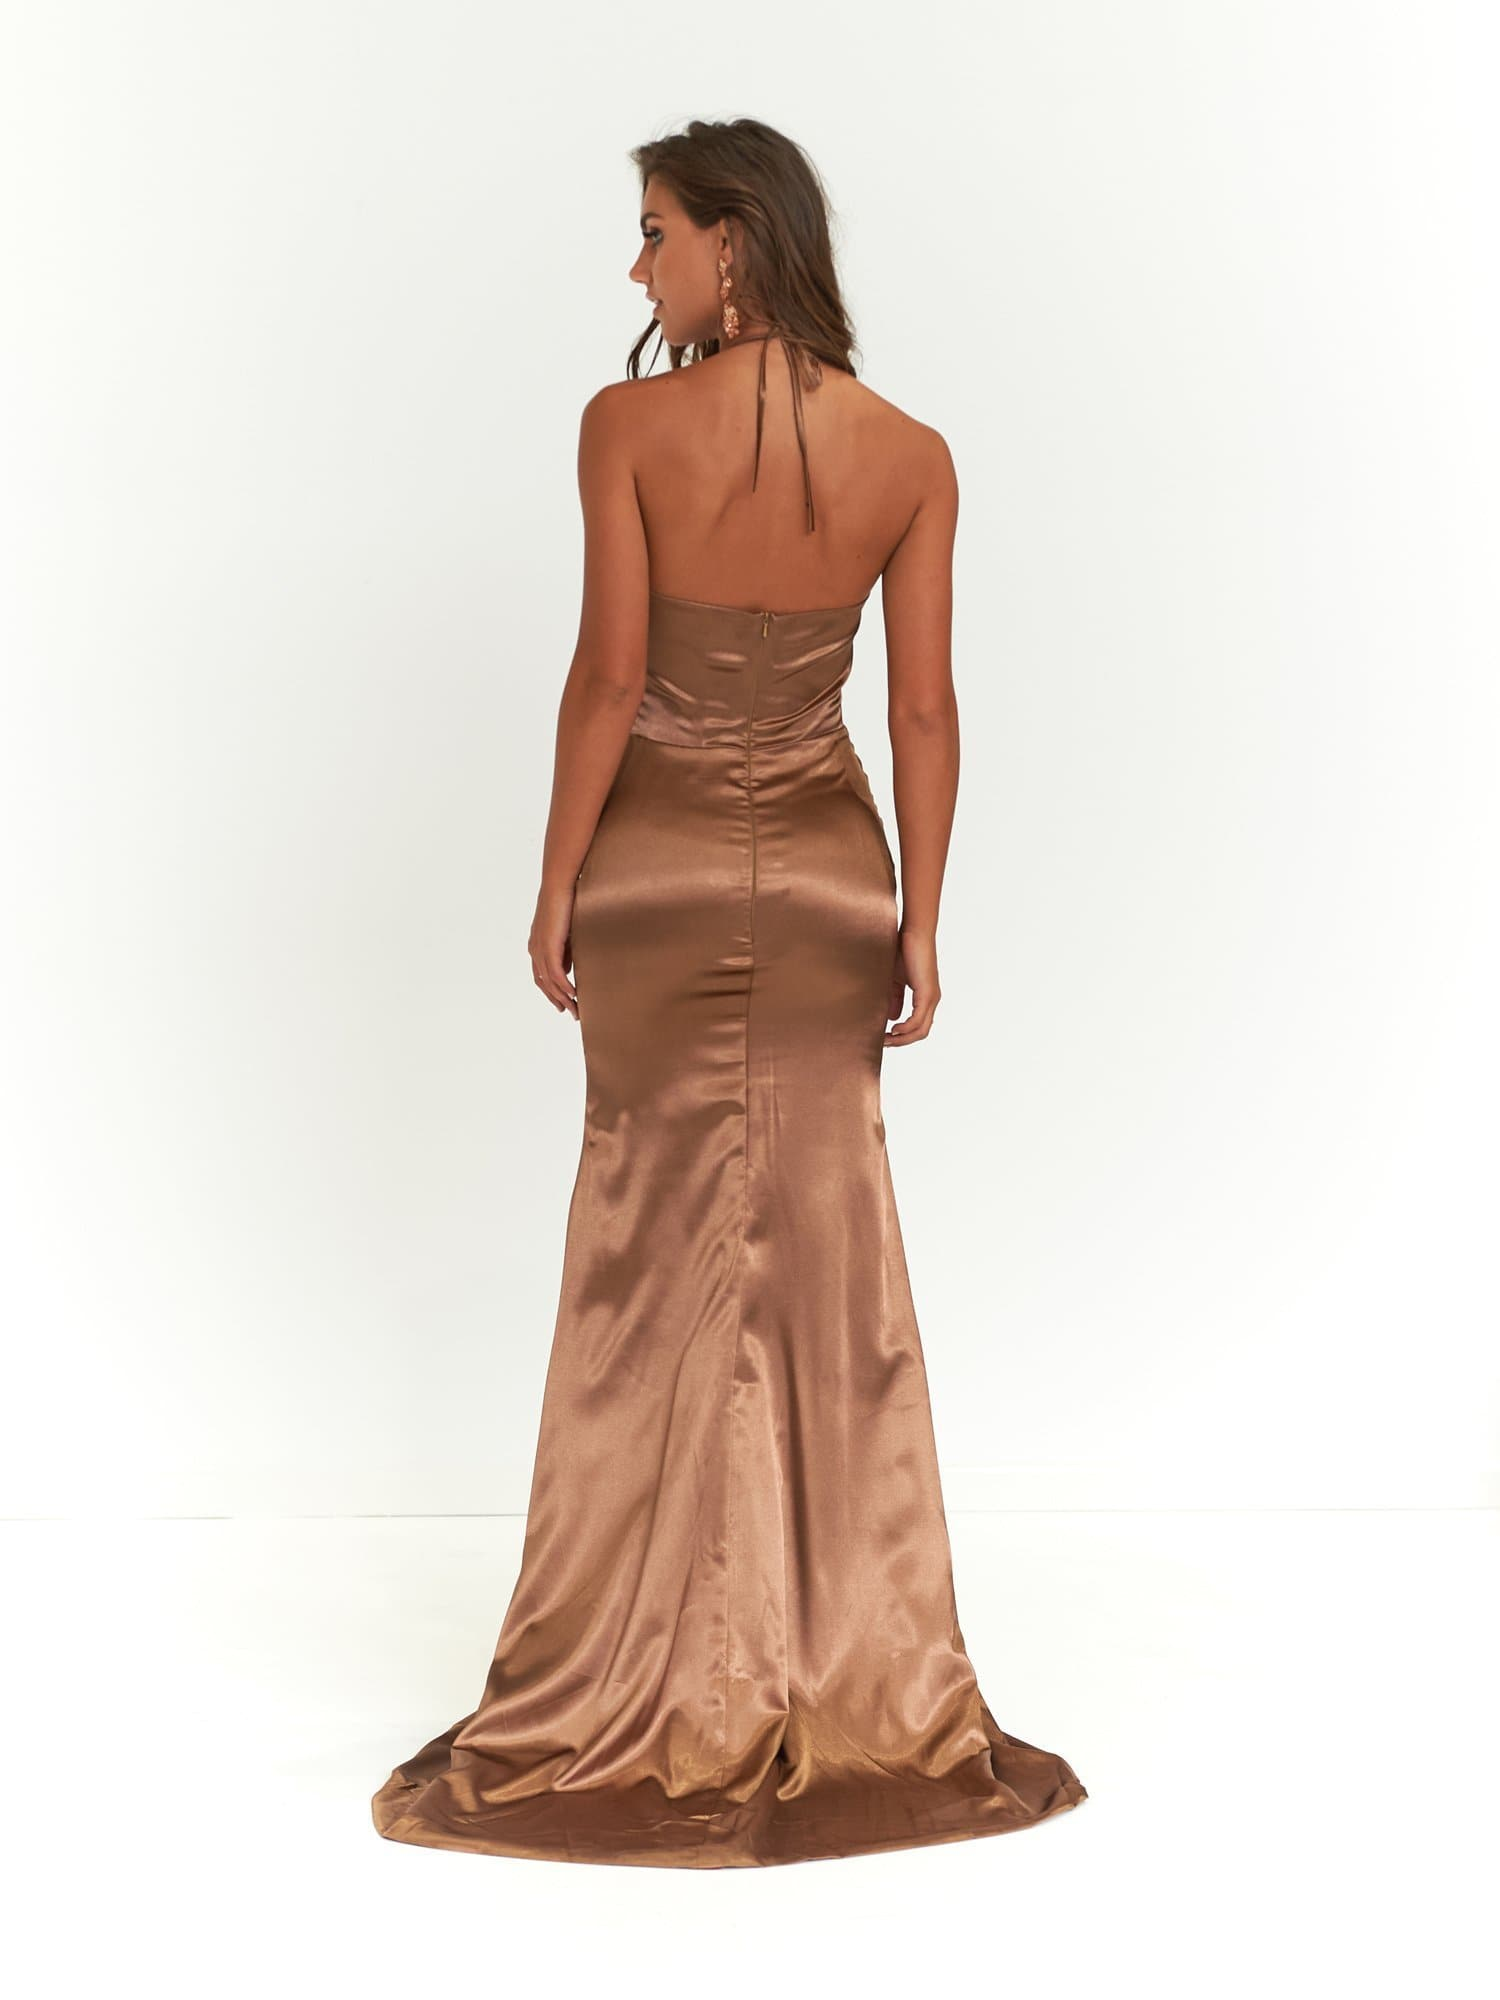 Alyssa Formal Dress - Mocha Satin V Neck Low Back Full Length Gown